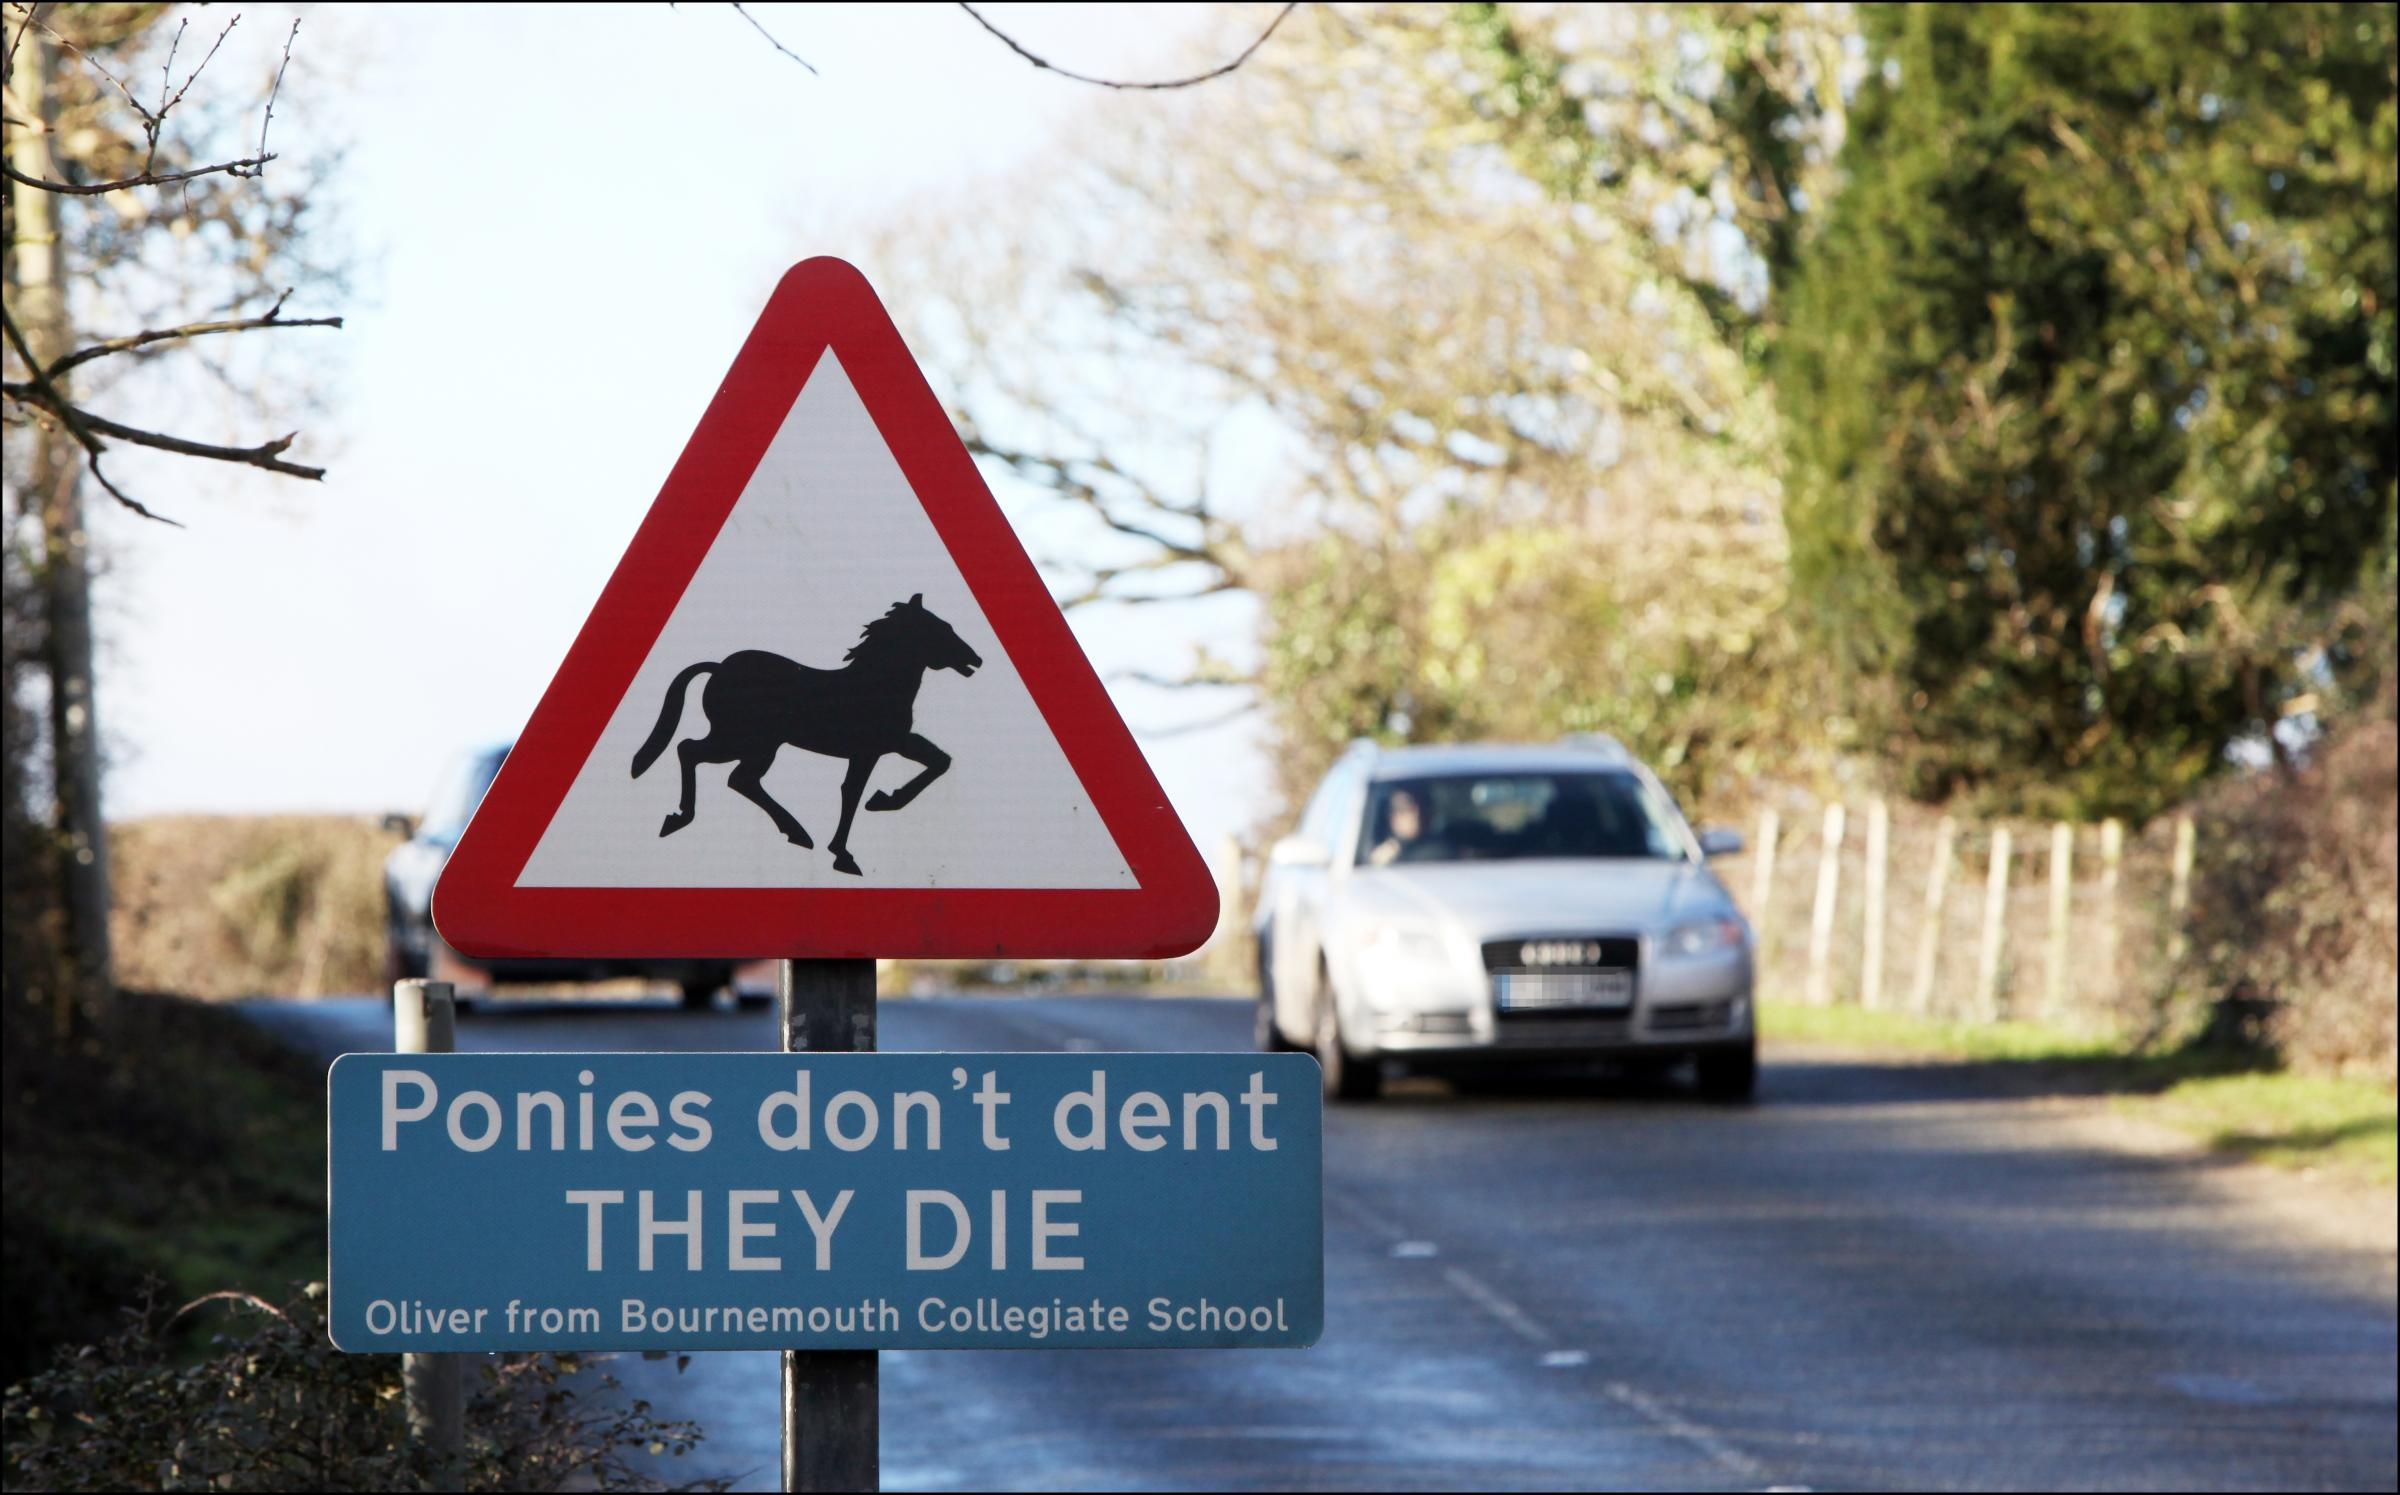 A warning sign near Beaulieu.